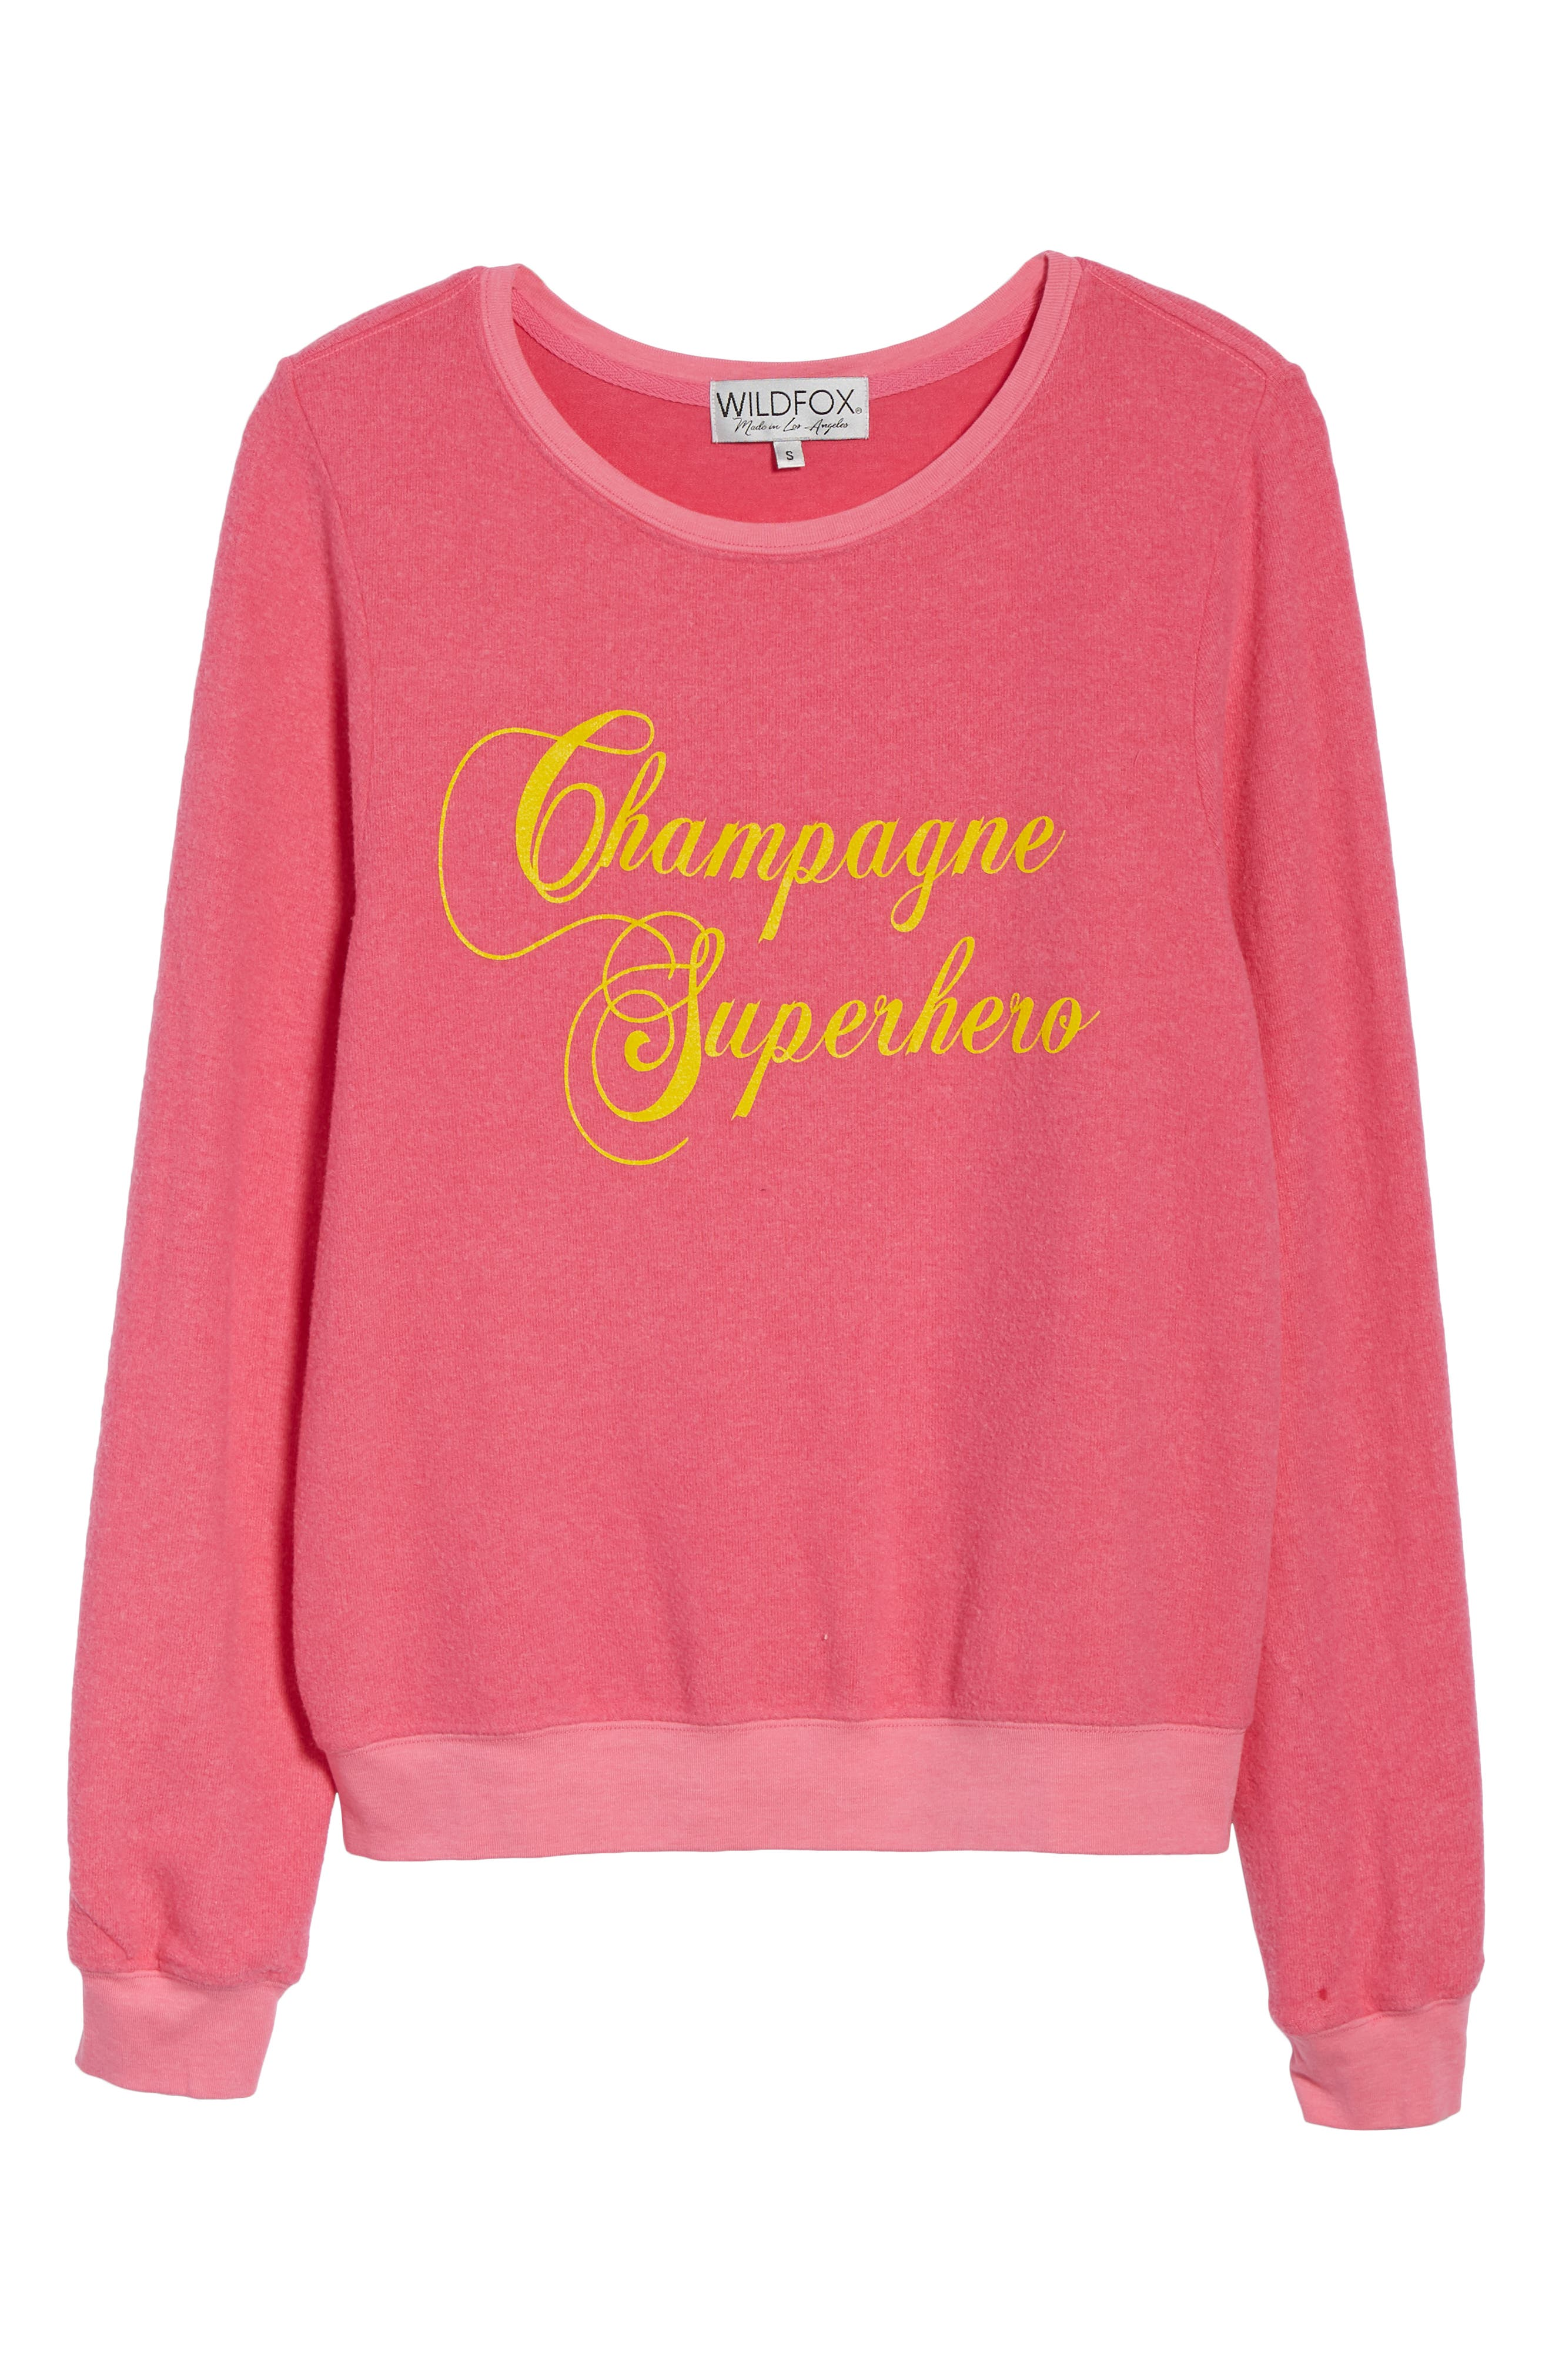 Baggy Beach Jumper - Champagne Superhero Pullover,                             Alternate thumbnail 6, color,                             NEON MAGENTA